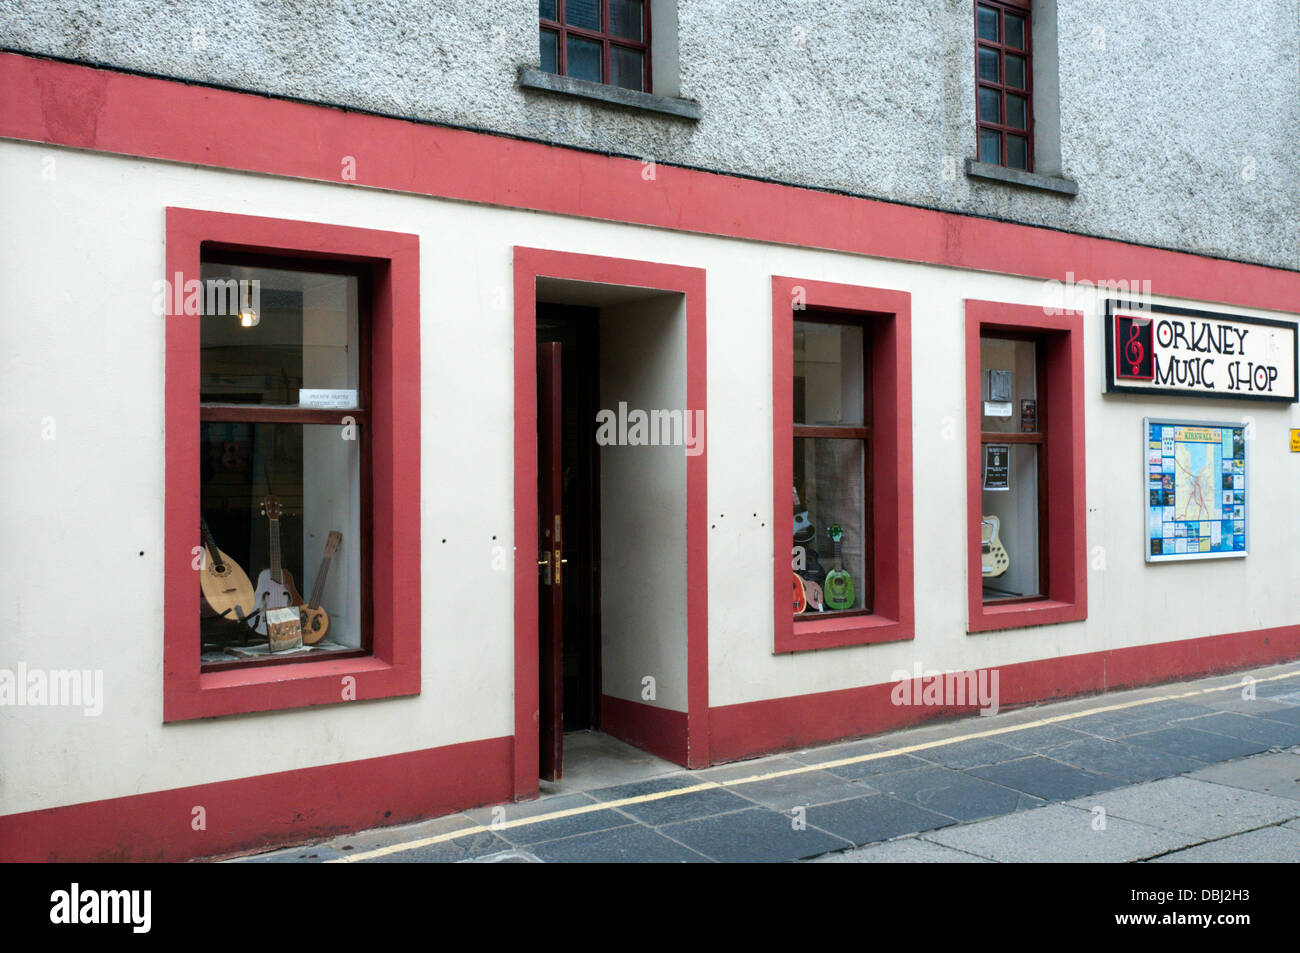 The Orkney Music Shop in Kirkwall. - Stock Image